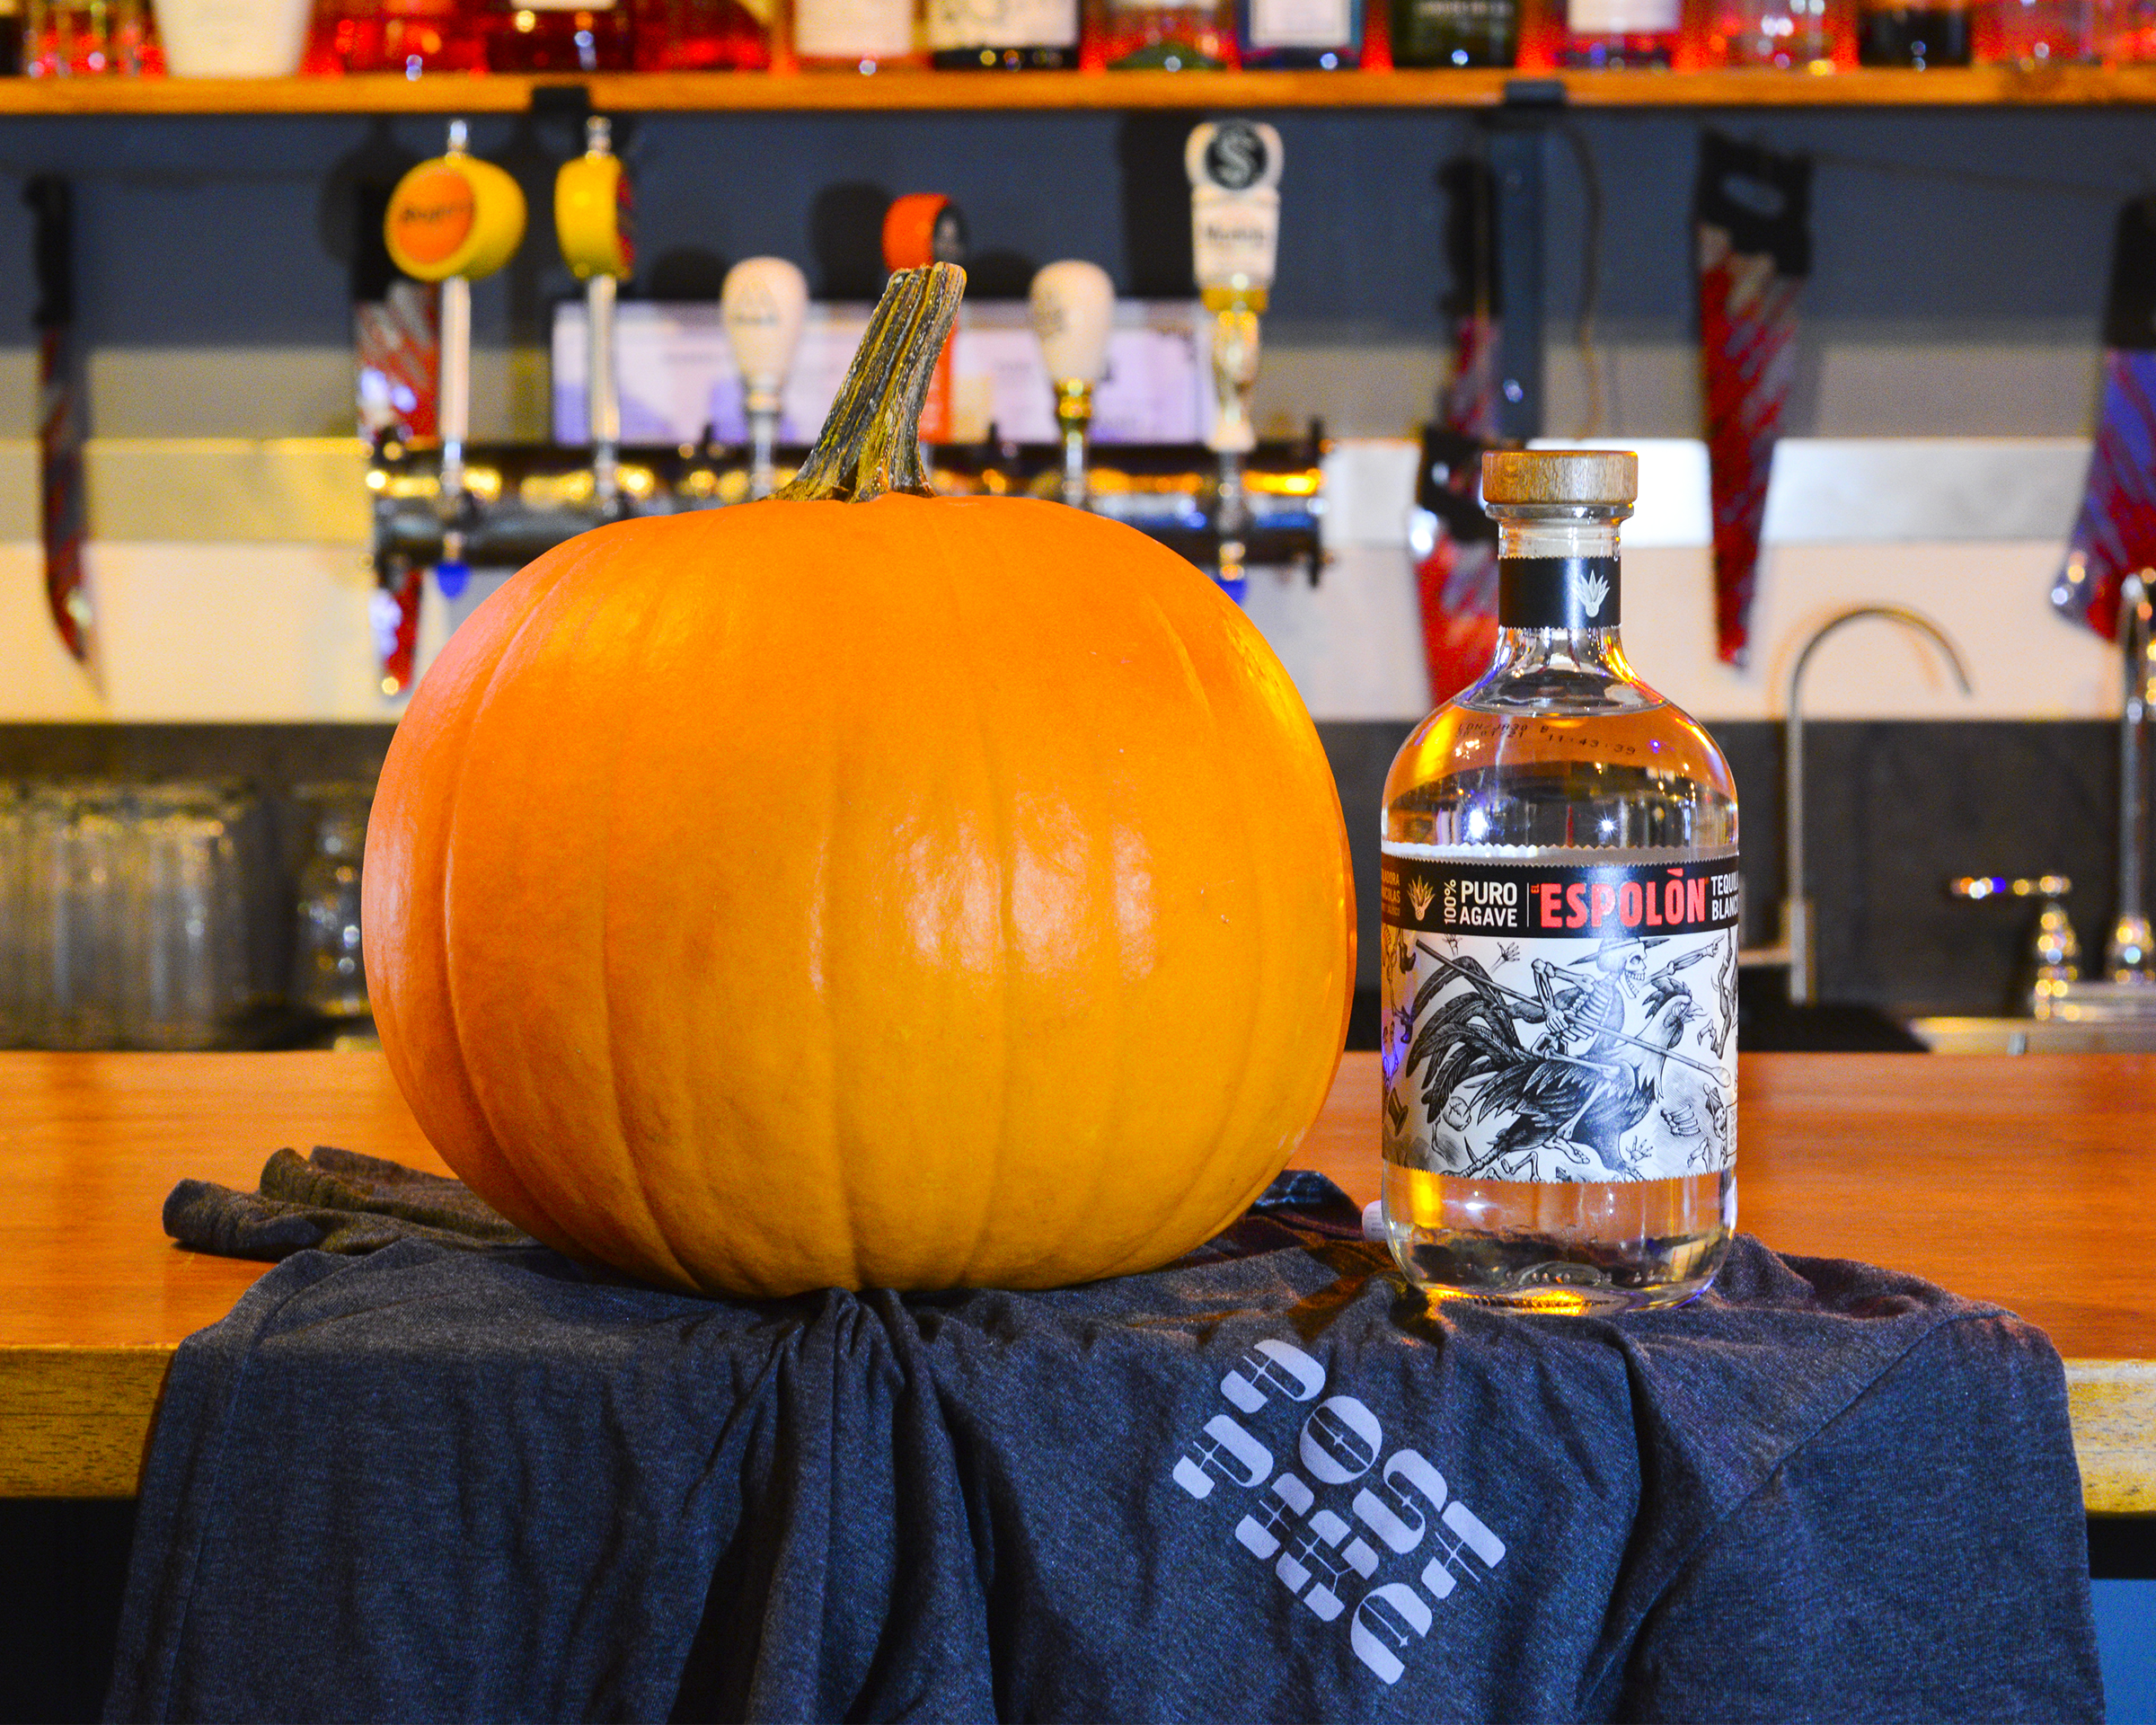 A large pumpkin sits next to a bottle of Espolon tequila. Both are on a black tablecloth with a bar in the background.